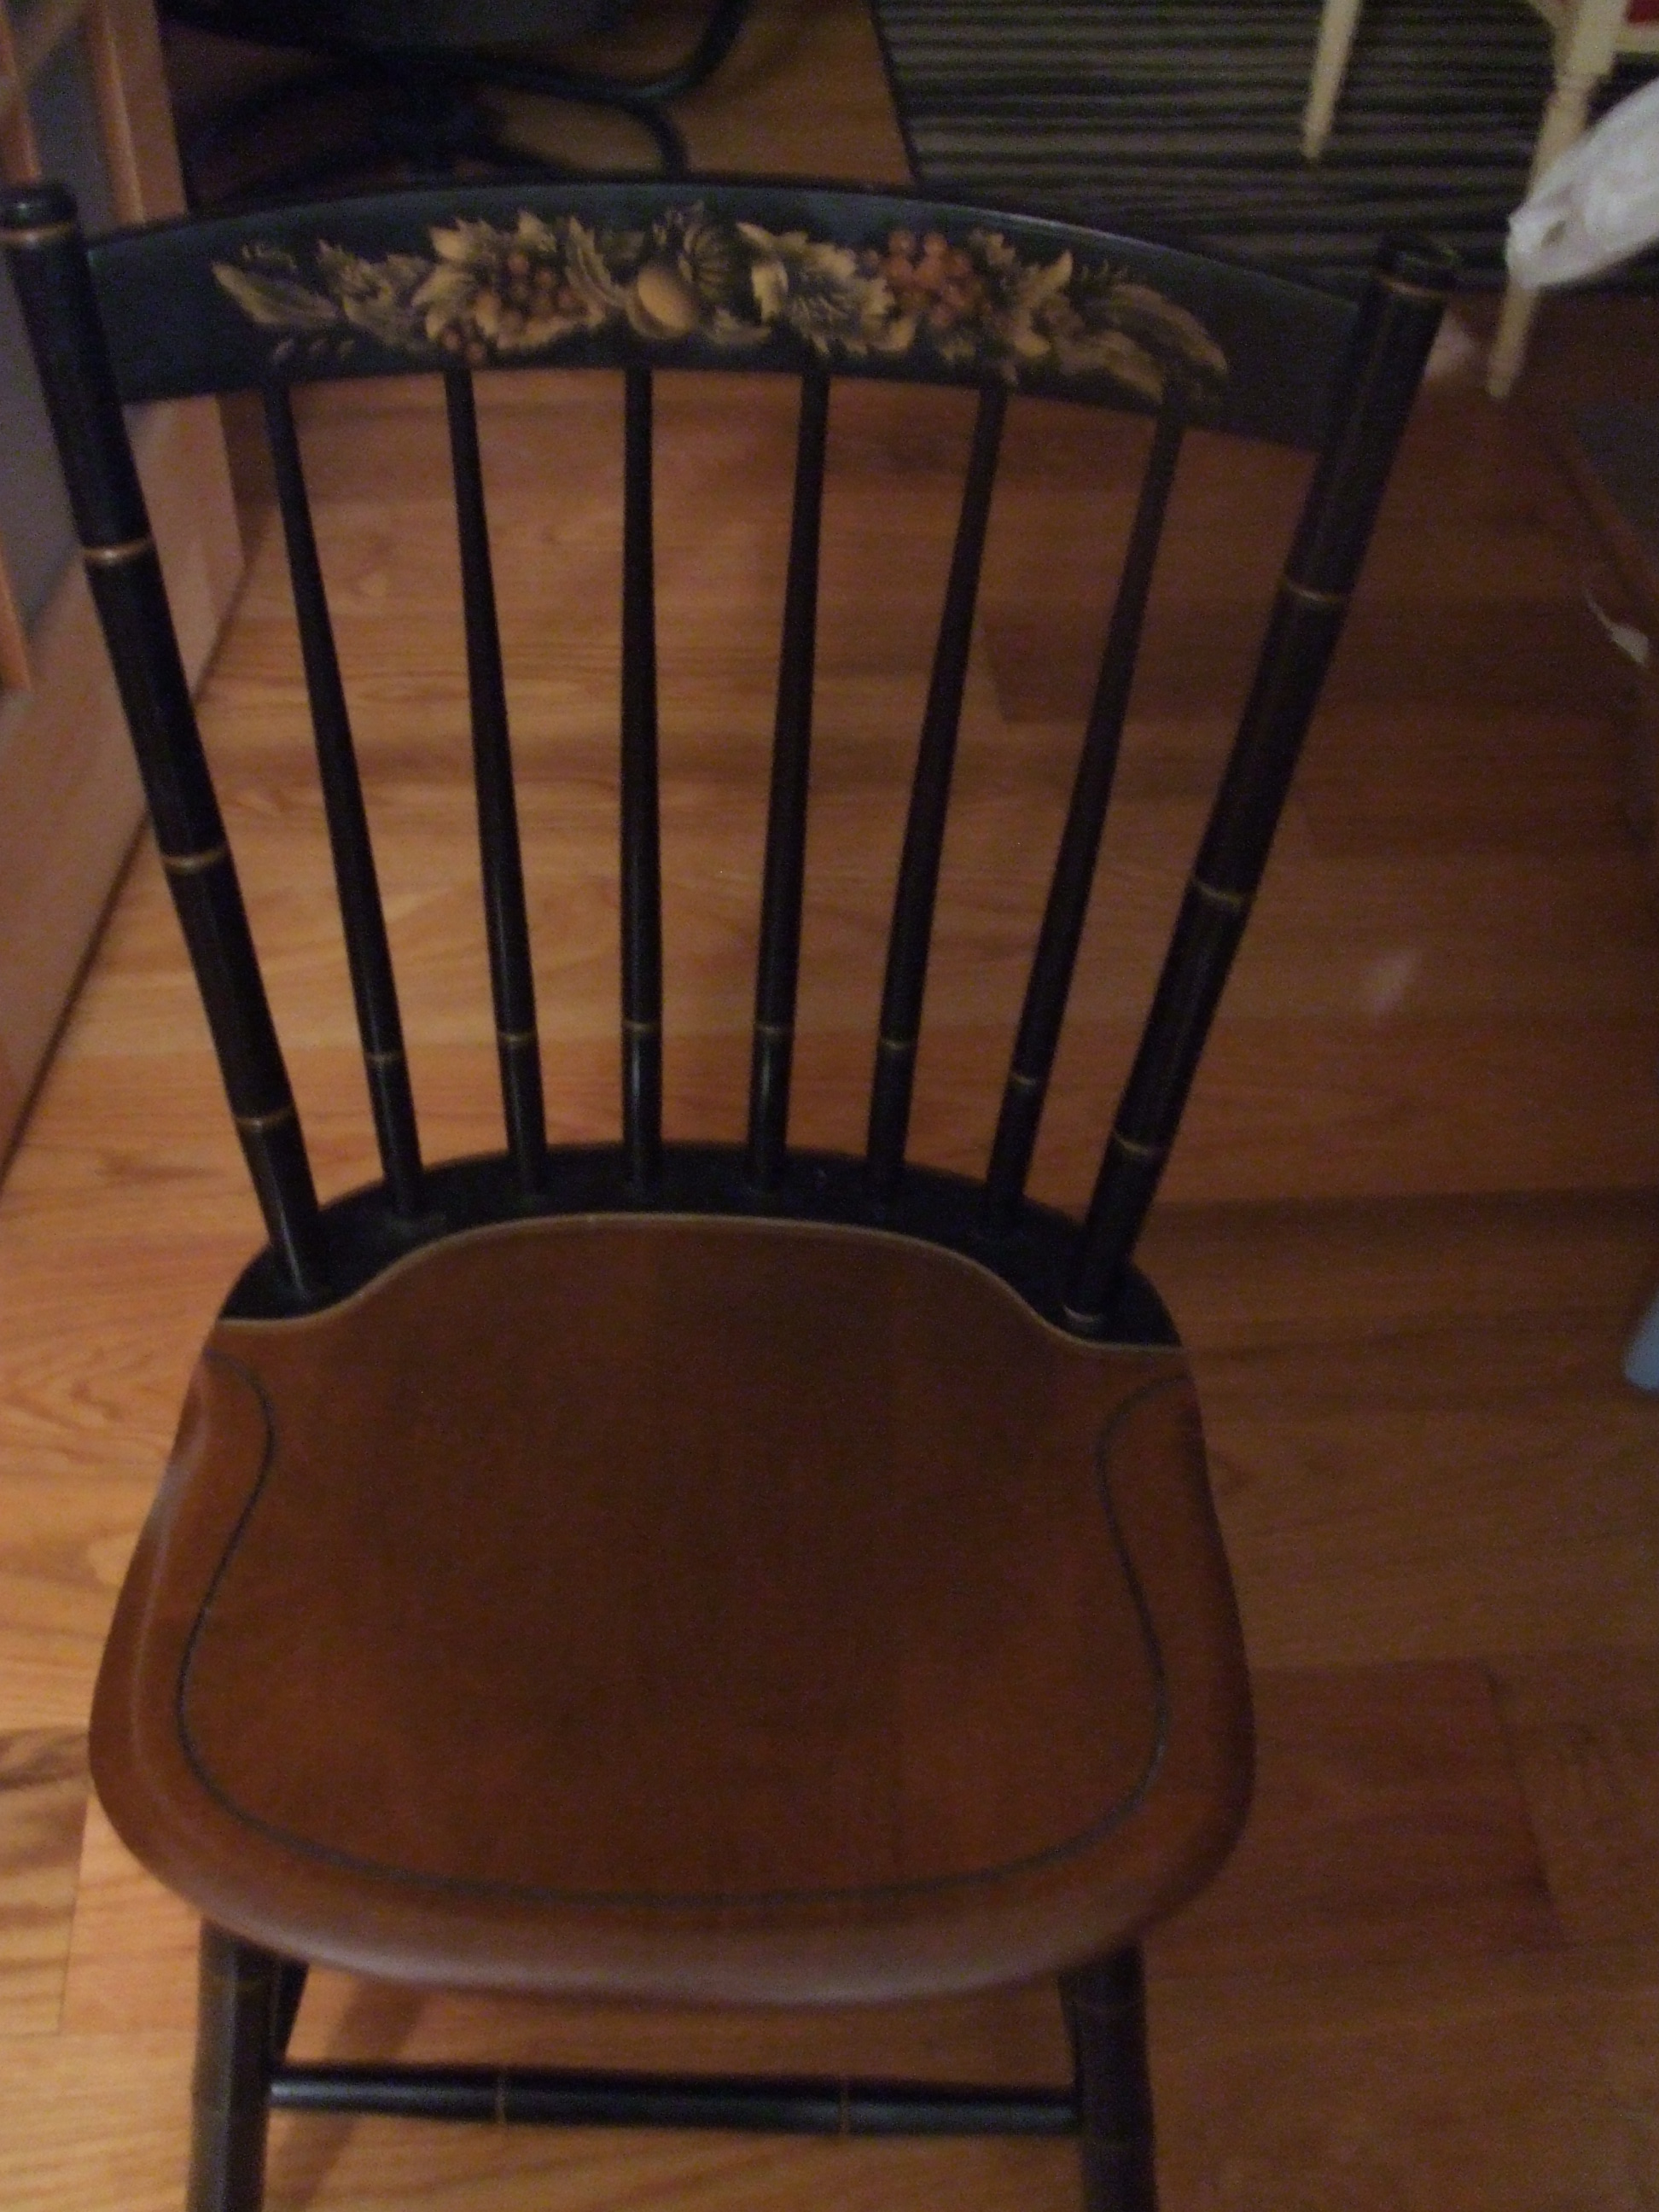 6 Hitchcock Chairs $225 each